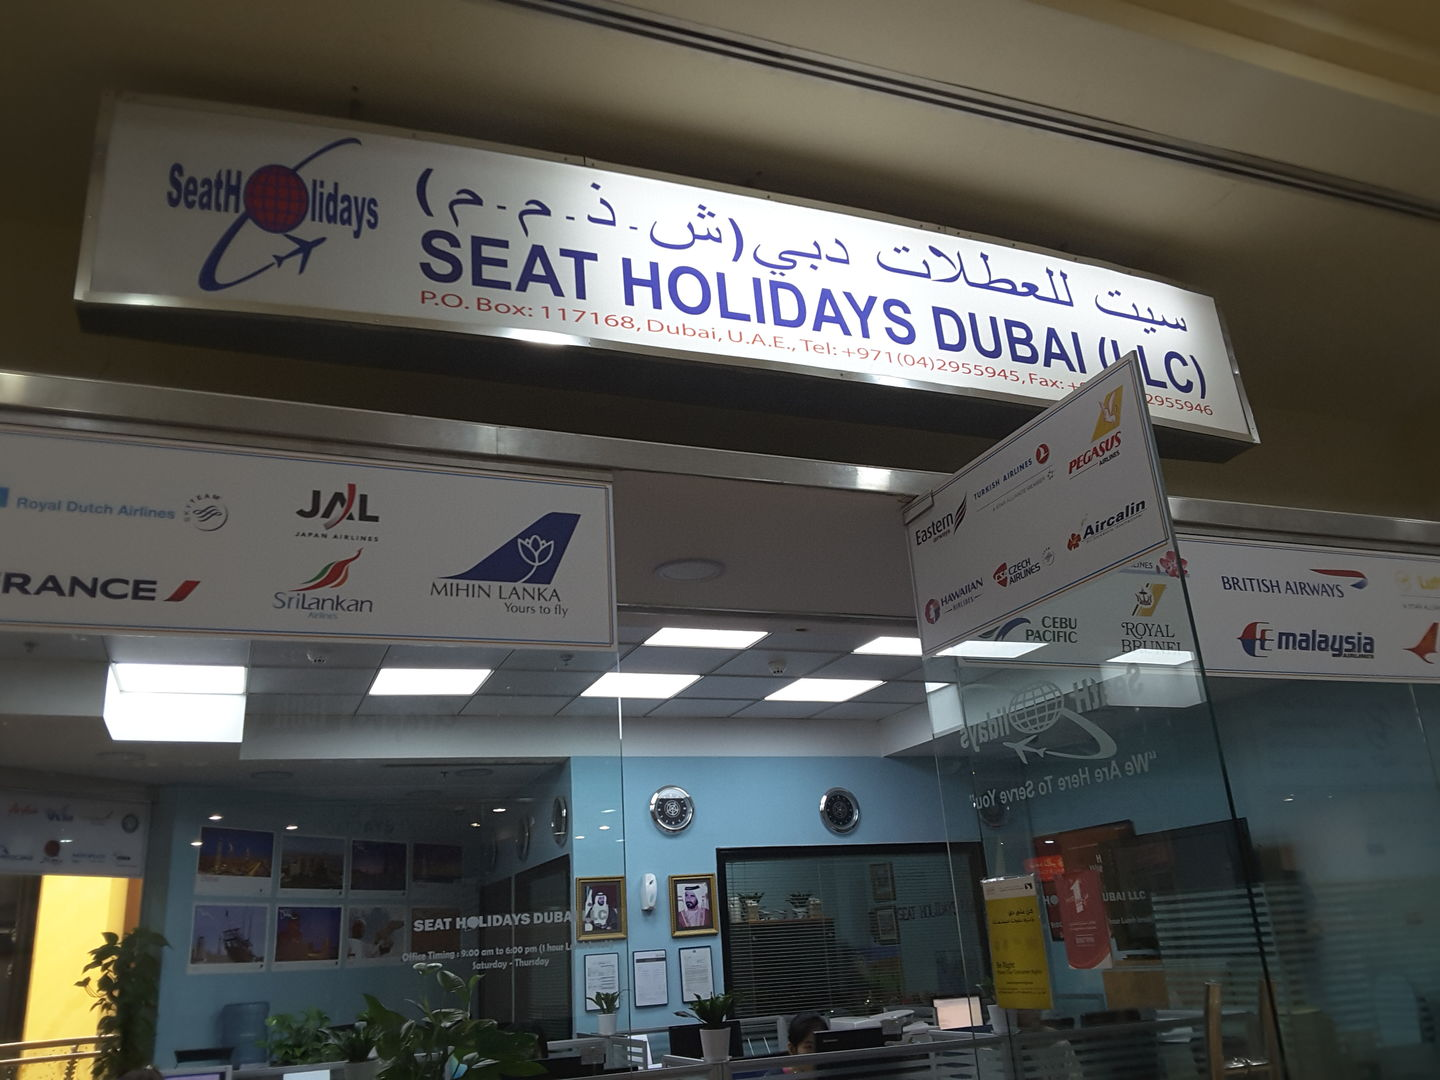 HiDubai-business-seat-holidays-dubai-hotels-tourism-travel-ticketing-agencies-port-saeed-dubai-2